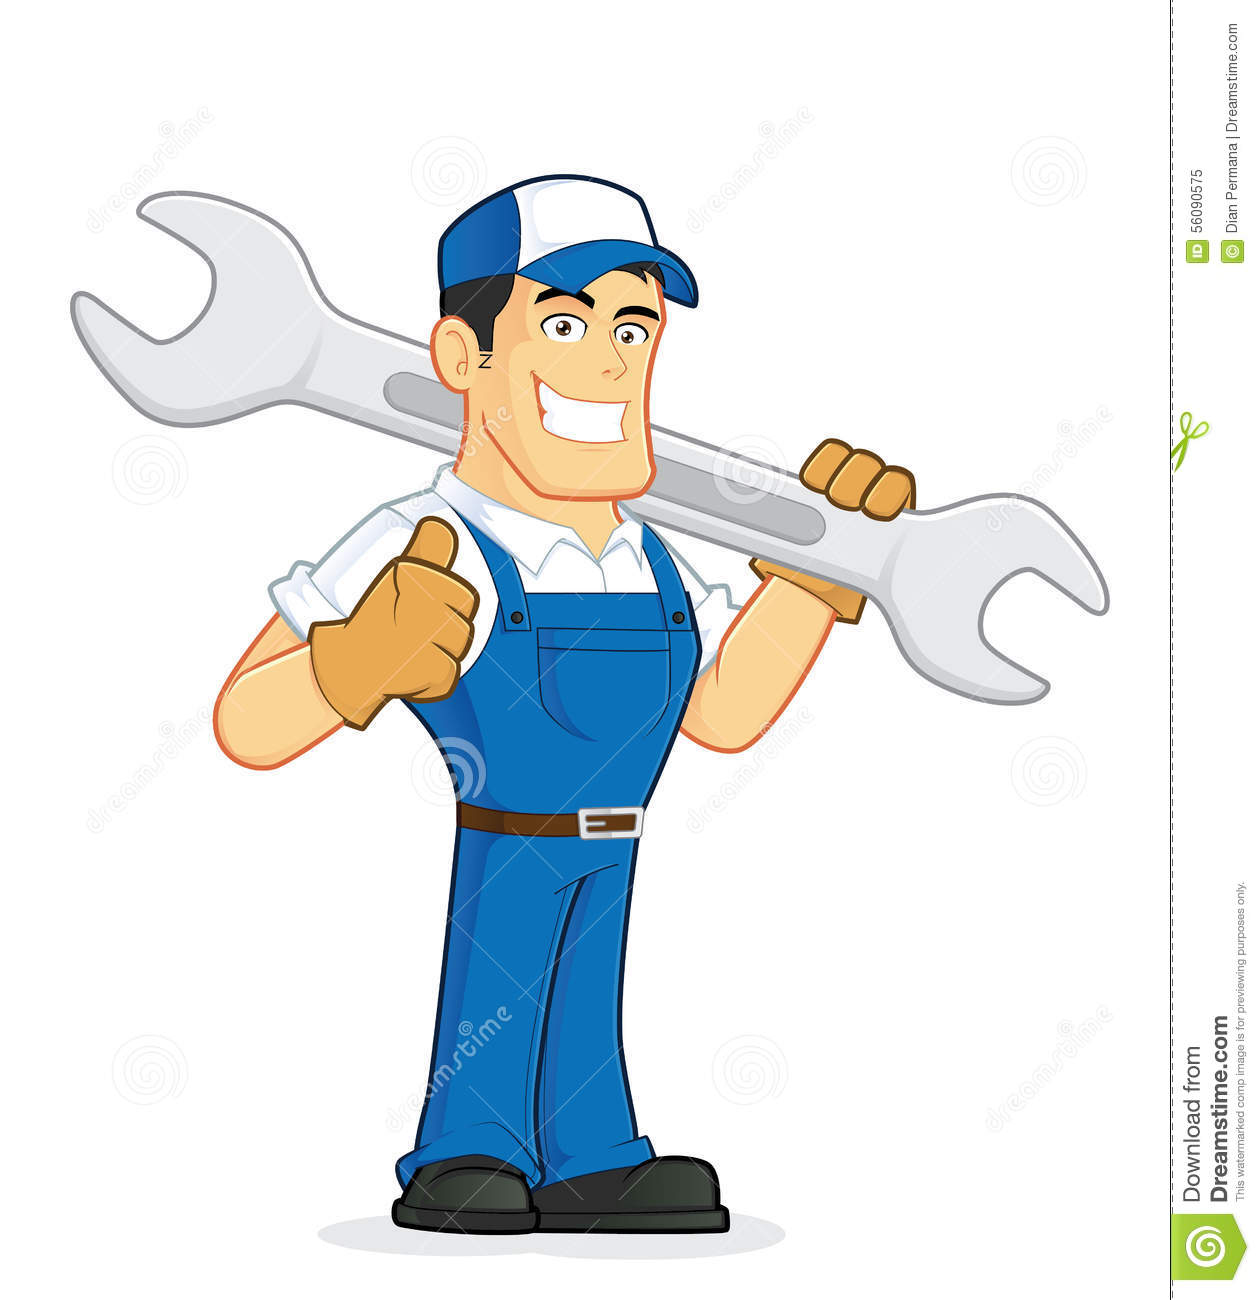 airplane mechanic clipart - photo #18